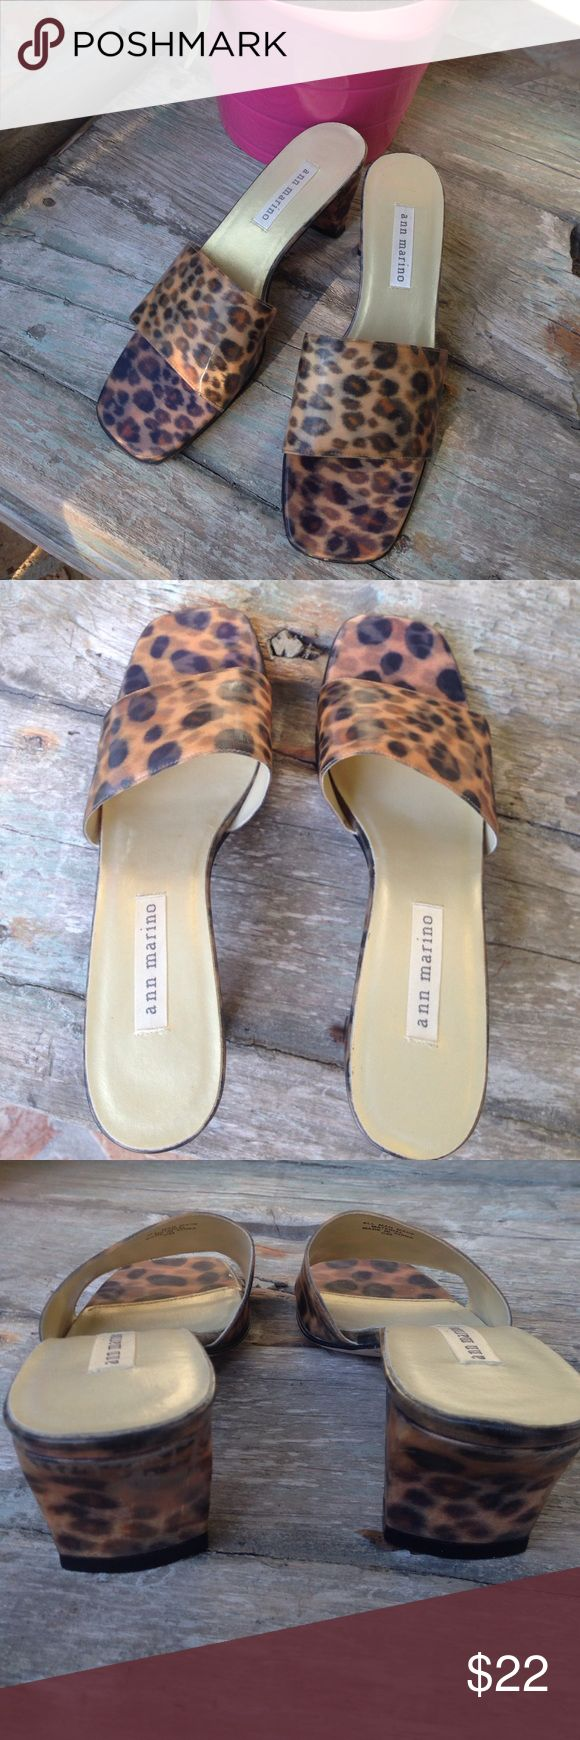 """ANN MARINO  MINI MULES Details - Tan/Black Leopard Print in man-made materials - 2.5"""" Heel - Size 8M - Approx. 10"""" length - In Great, New Condition with no footprint or wear on heel Ann Marino Shoes Mules & Clogs"""